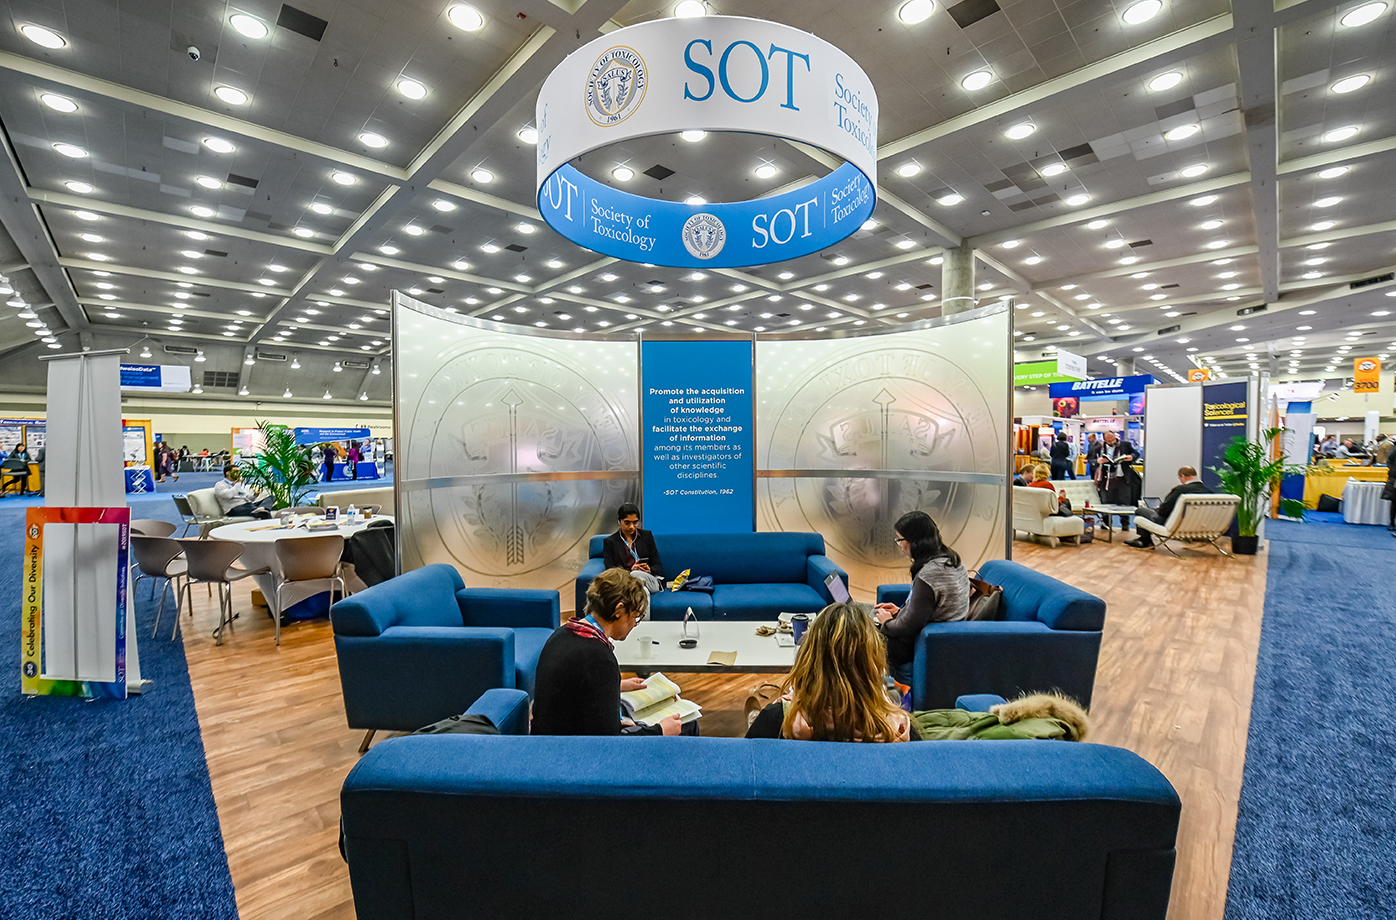 A large hollow sign reading 'SOT Society of Toxicology' is hanging from the ceiling. In the foreground are four blue couches with women in business attire sitting on them while reading and looking at their phones.